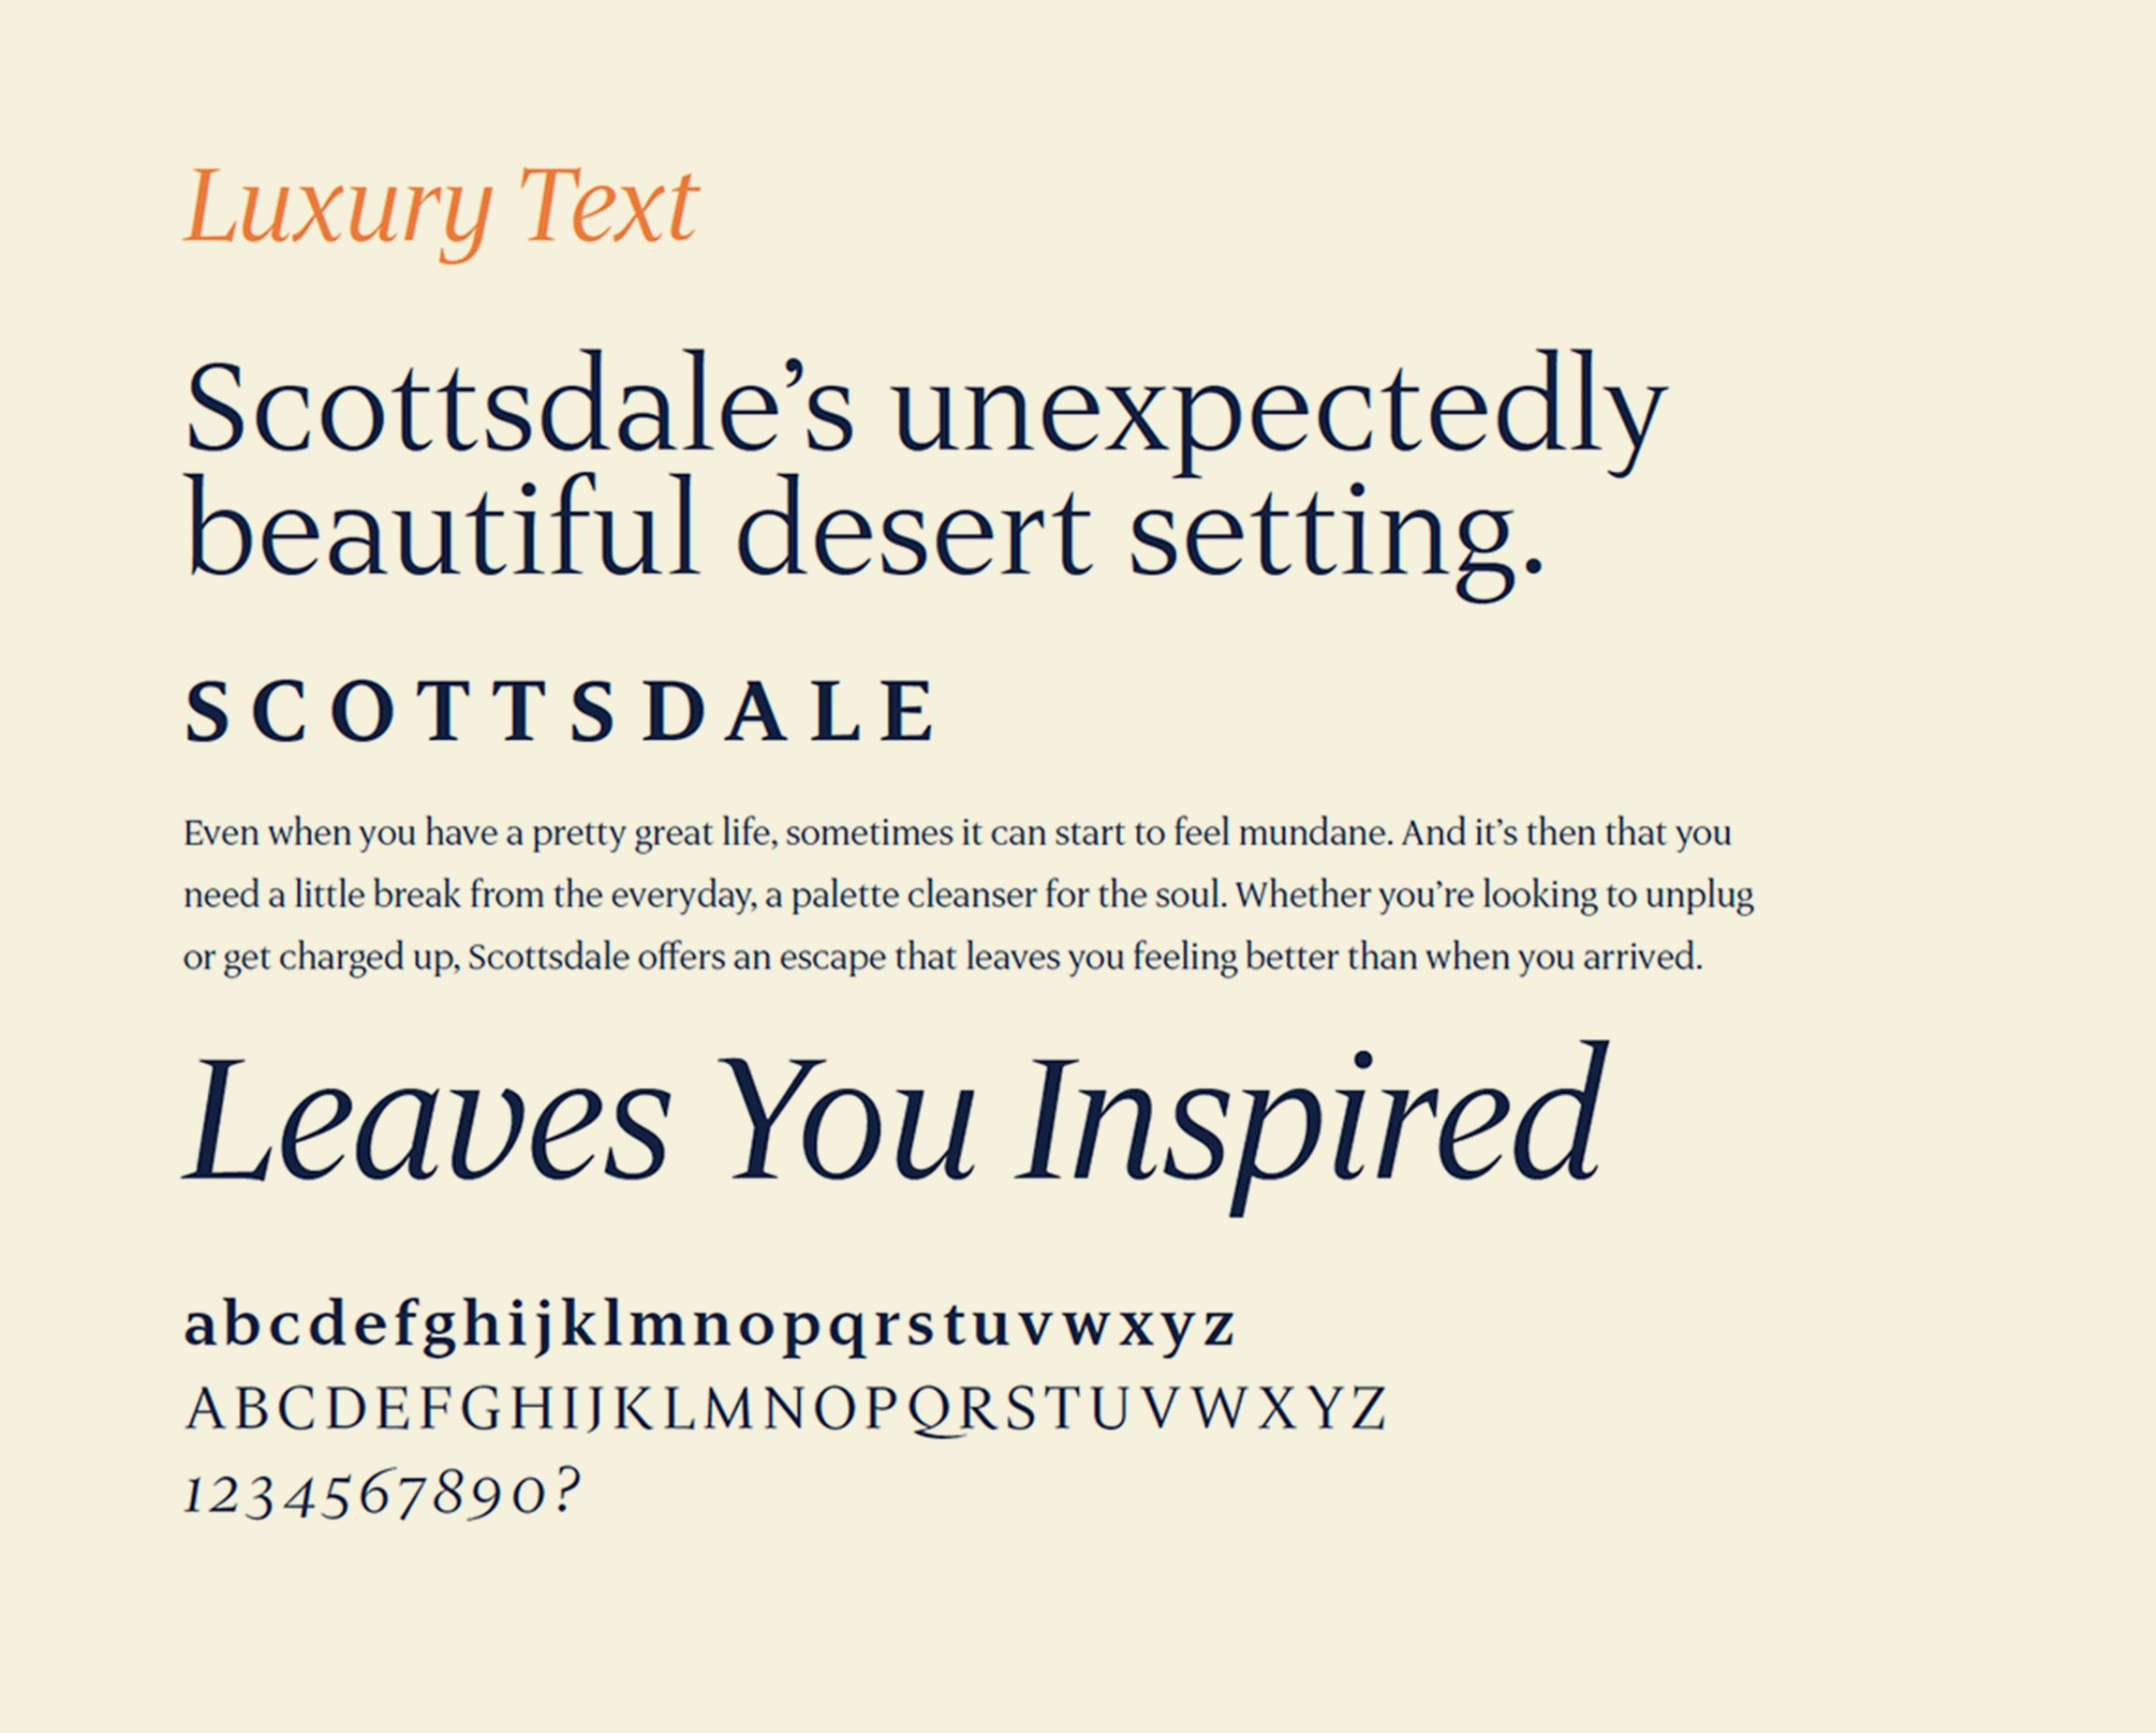 Examples of Luxury Text